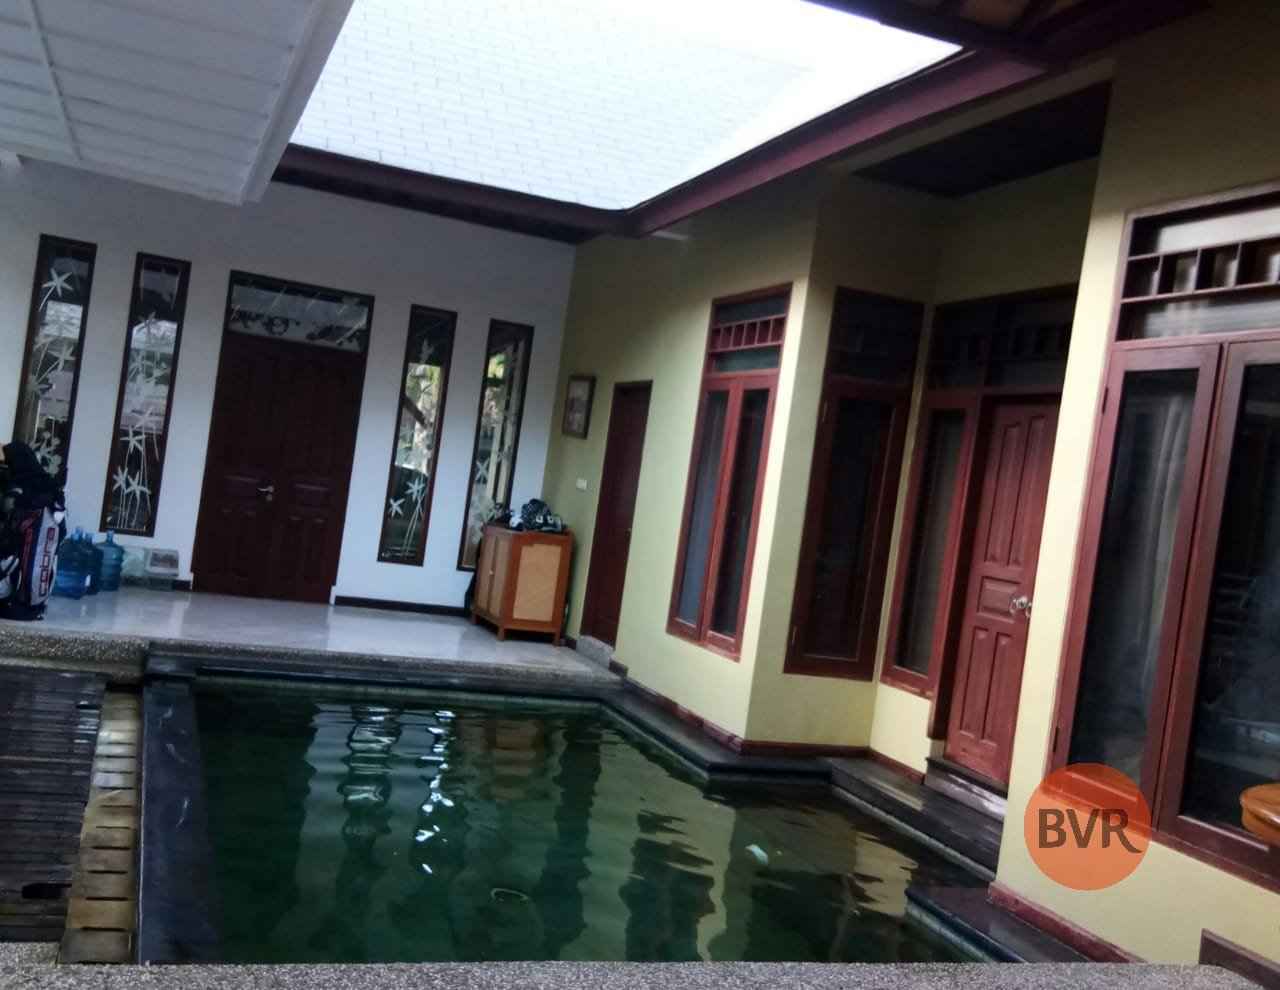 4 Bedroom Family Size Villa For Sale In Kerobokan